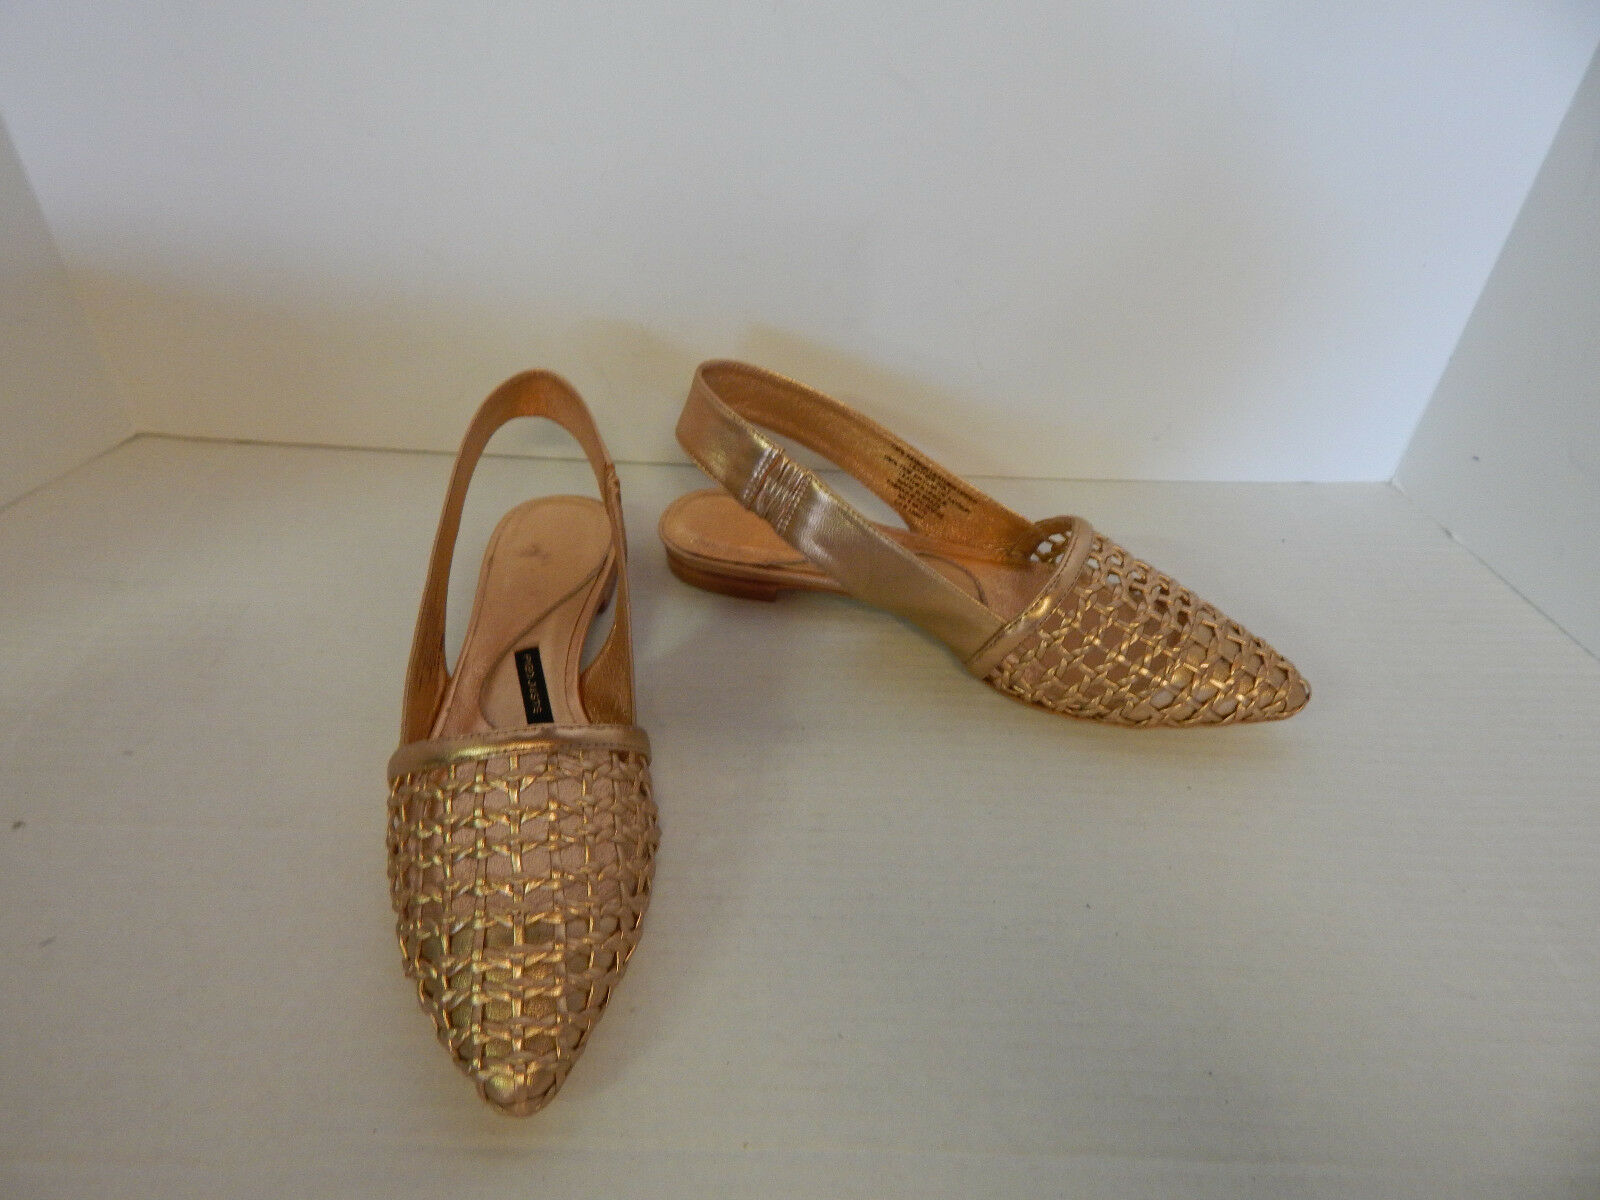 ANTHROPOLOGIE sz 38 7.5 PIED JUSTE FLATS ROSEGOLD LEATHER SLINGBACK  228